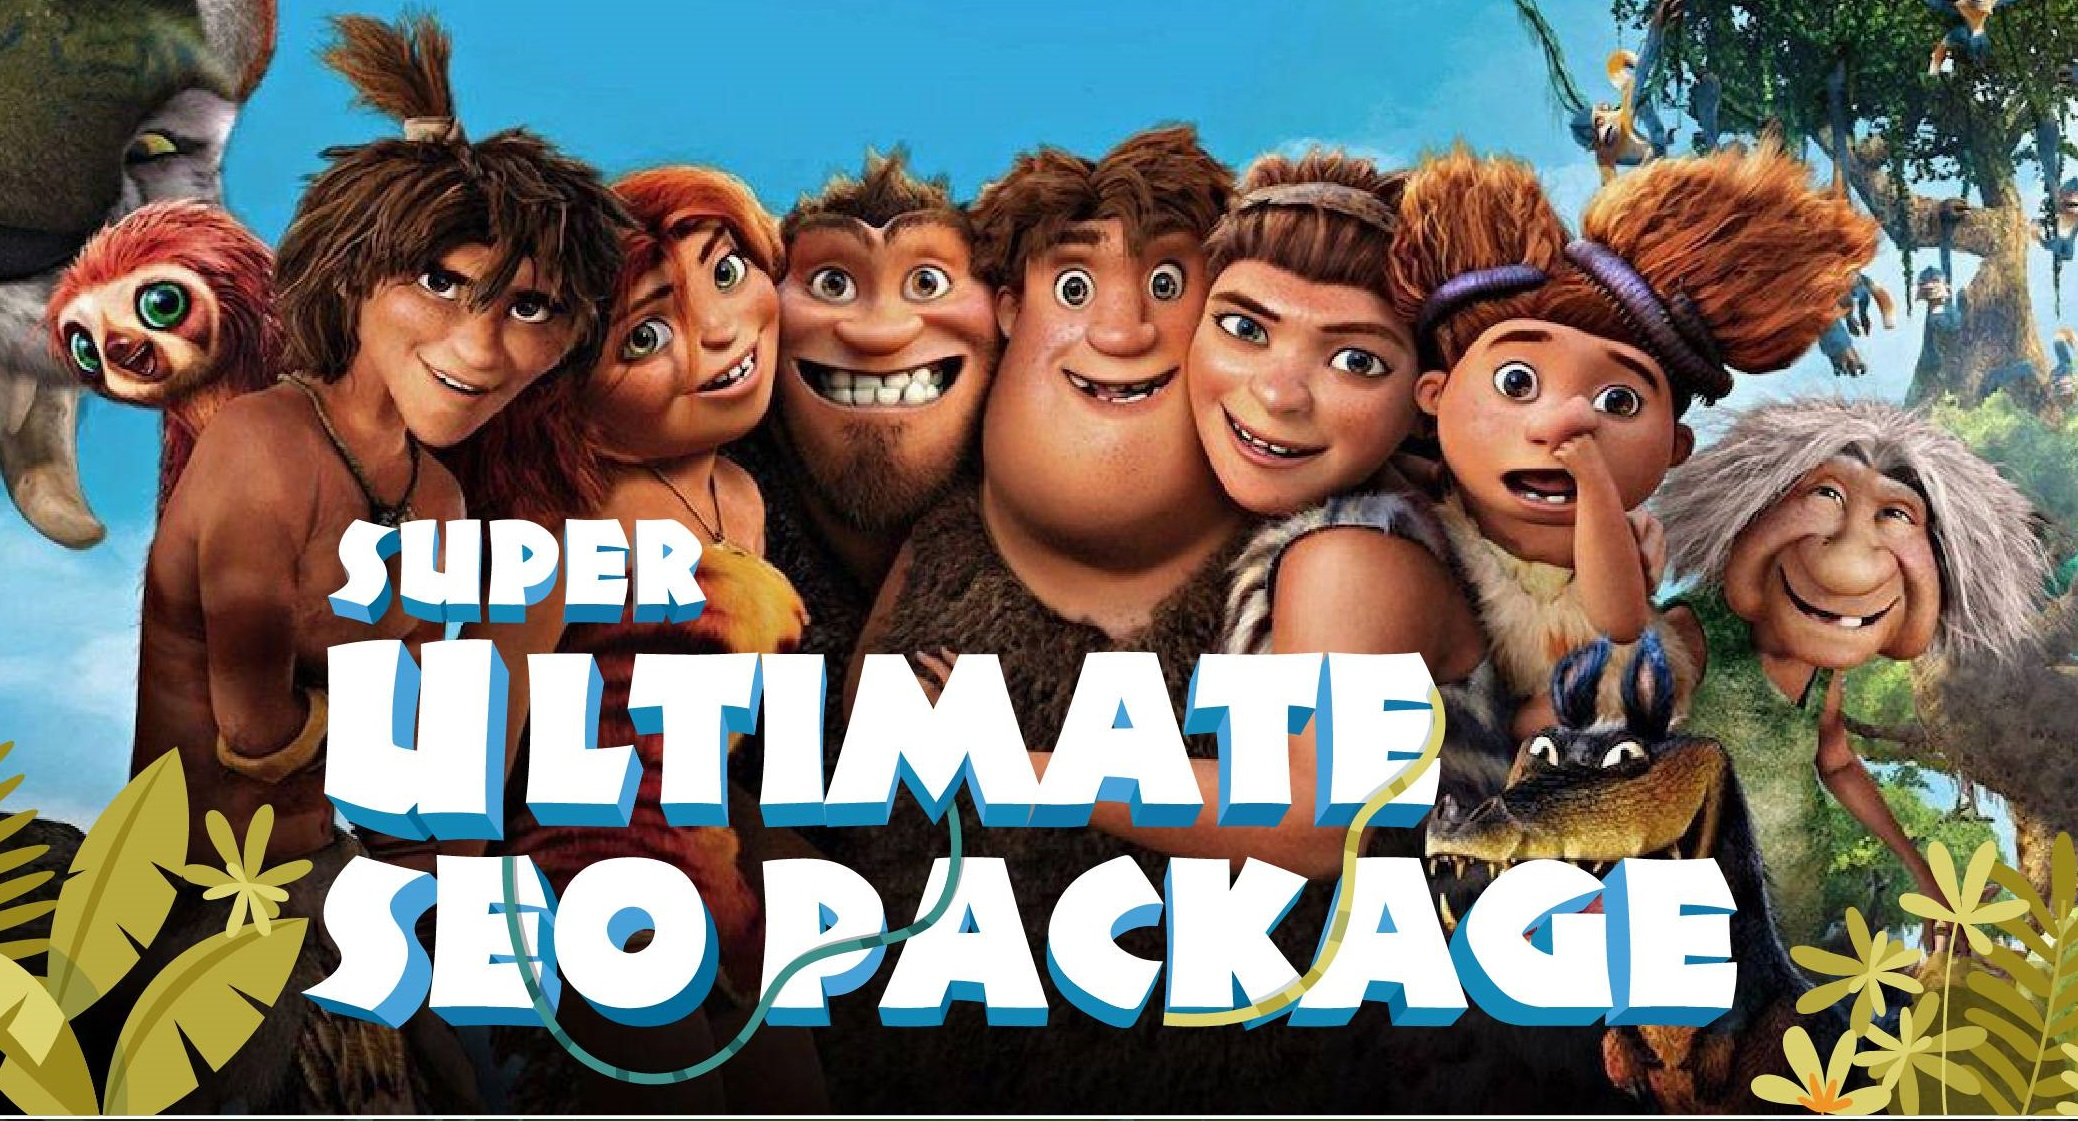 Super Ultimate SEO Package High Performance Do+No follow Link Building Strategy Manually